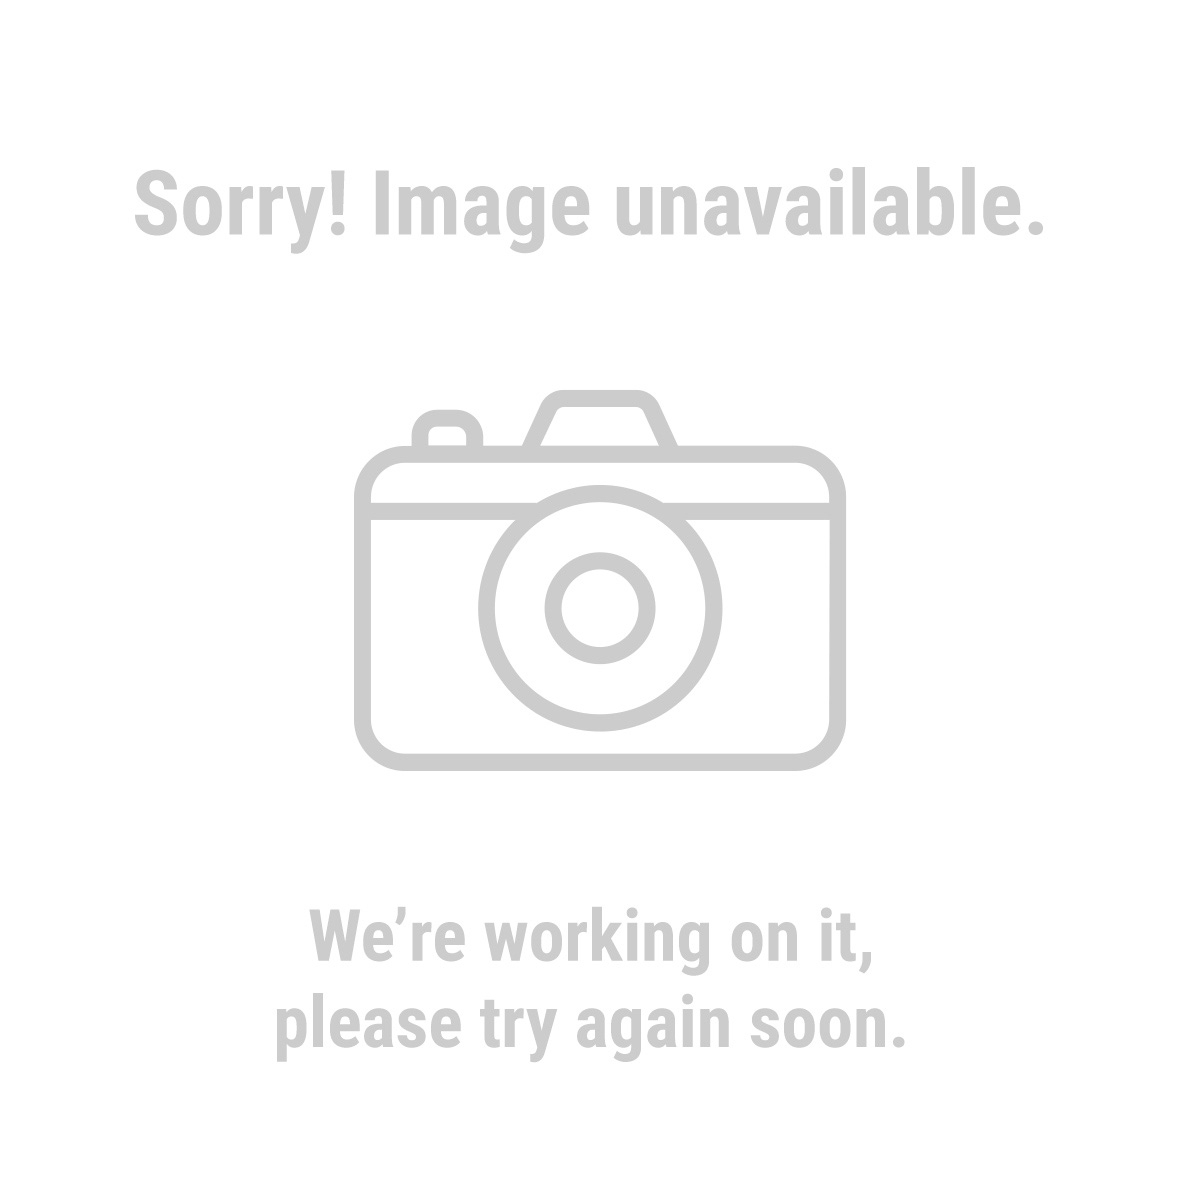 HARDY 41977 Cotton and Leather Gloves